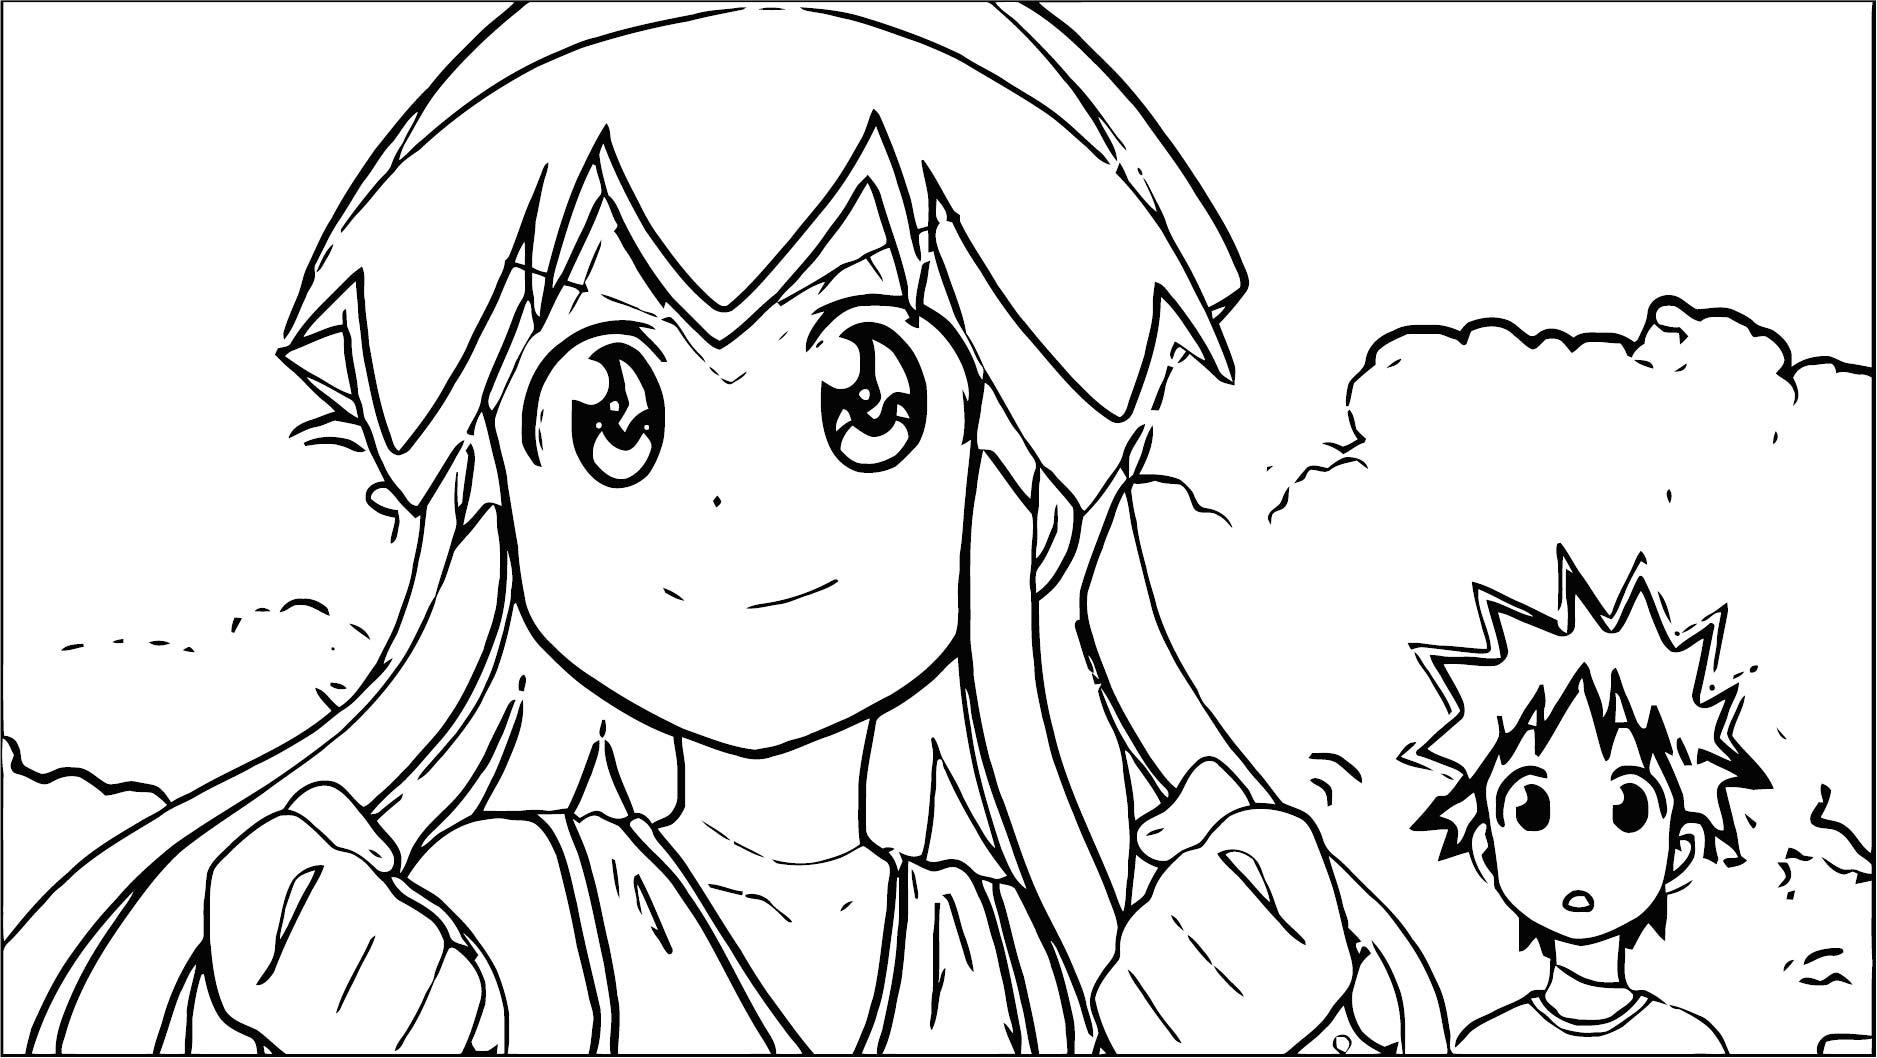 squid girl coloring page 103 wecoloringpage com